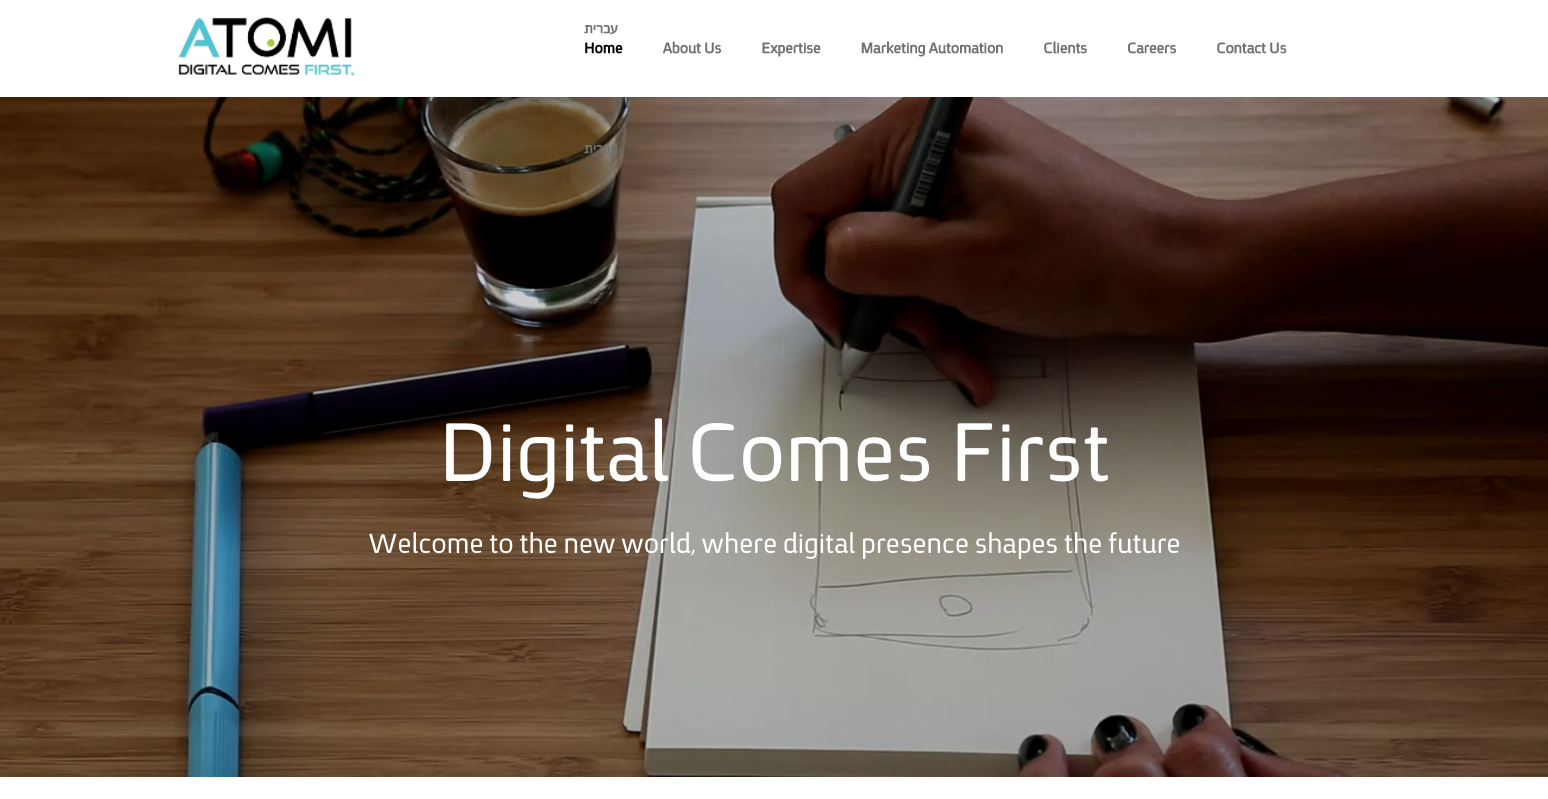 Atomi Digital Comes First - Israel - Agency -Digital